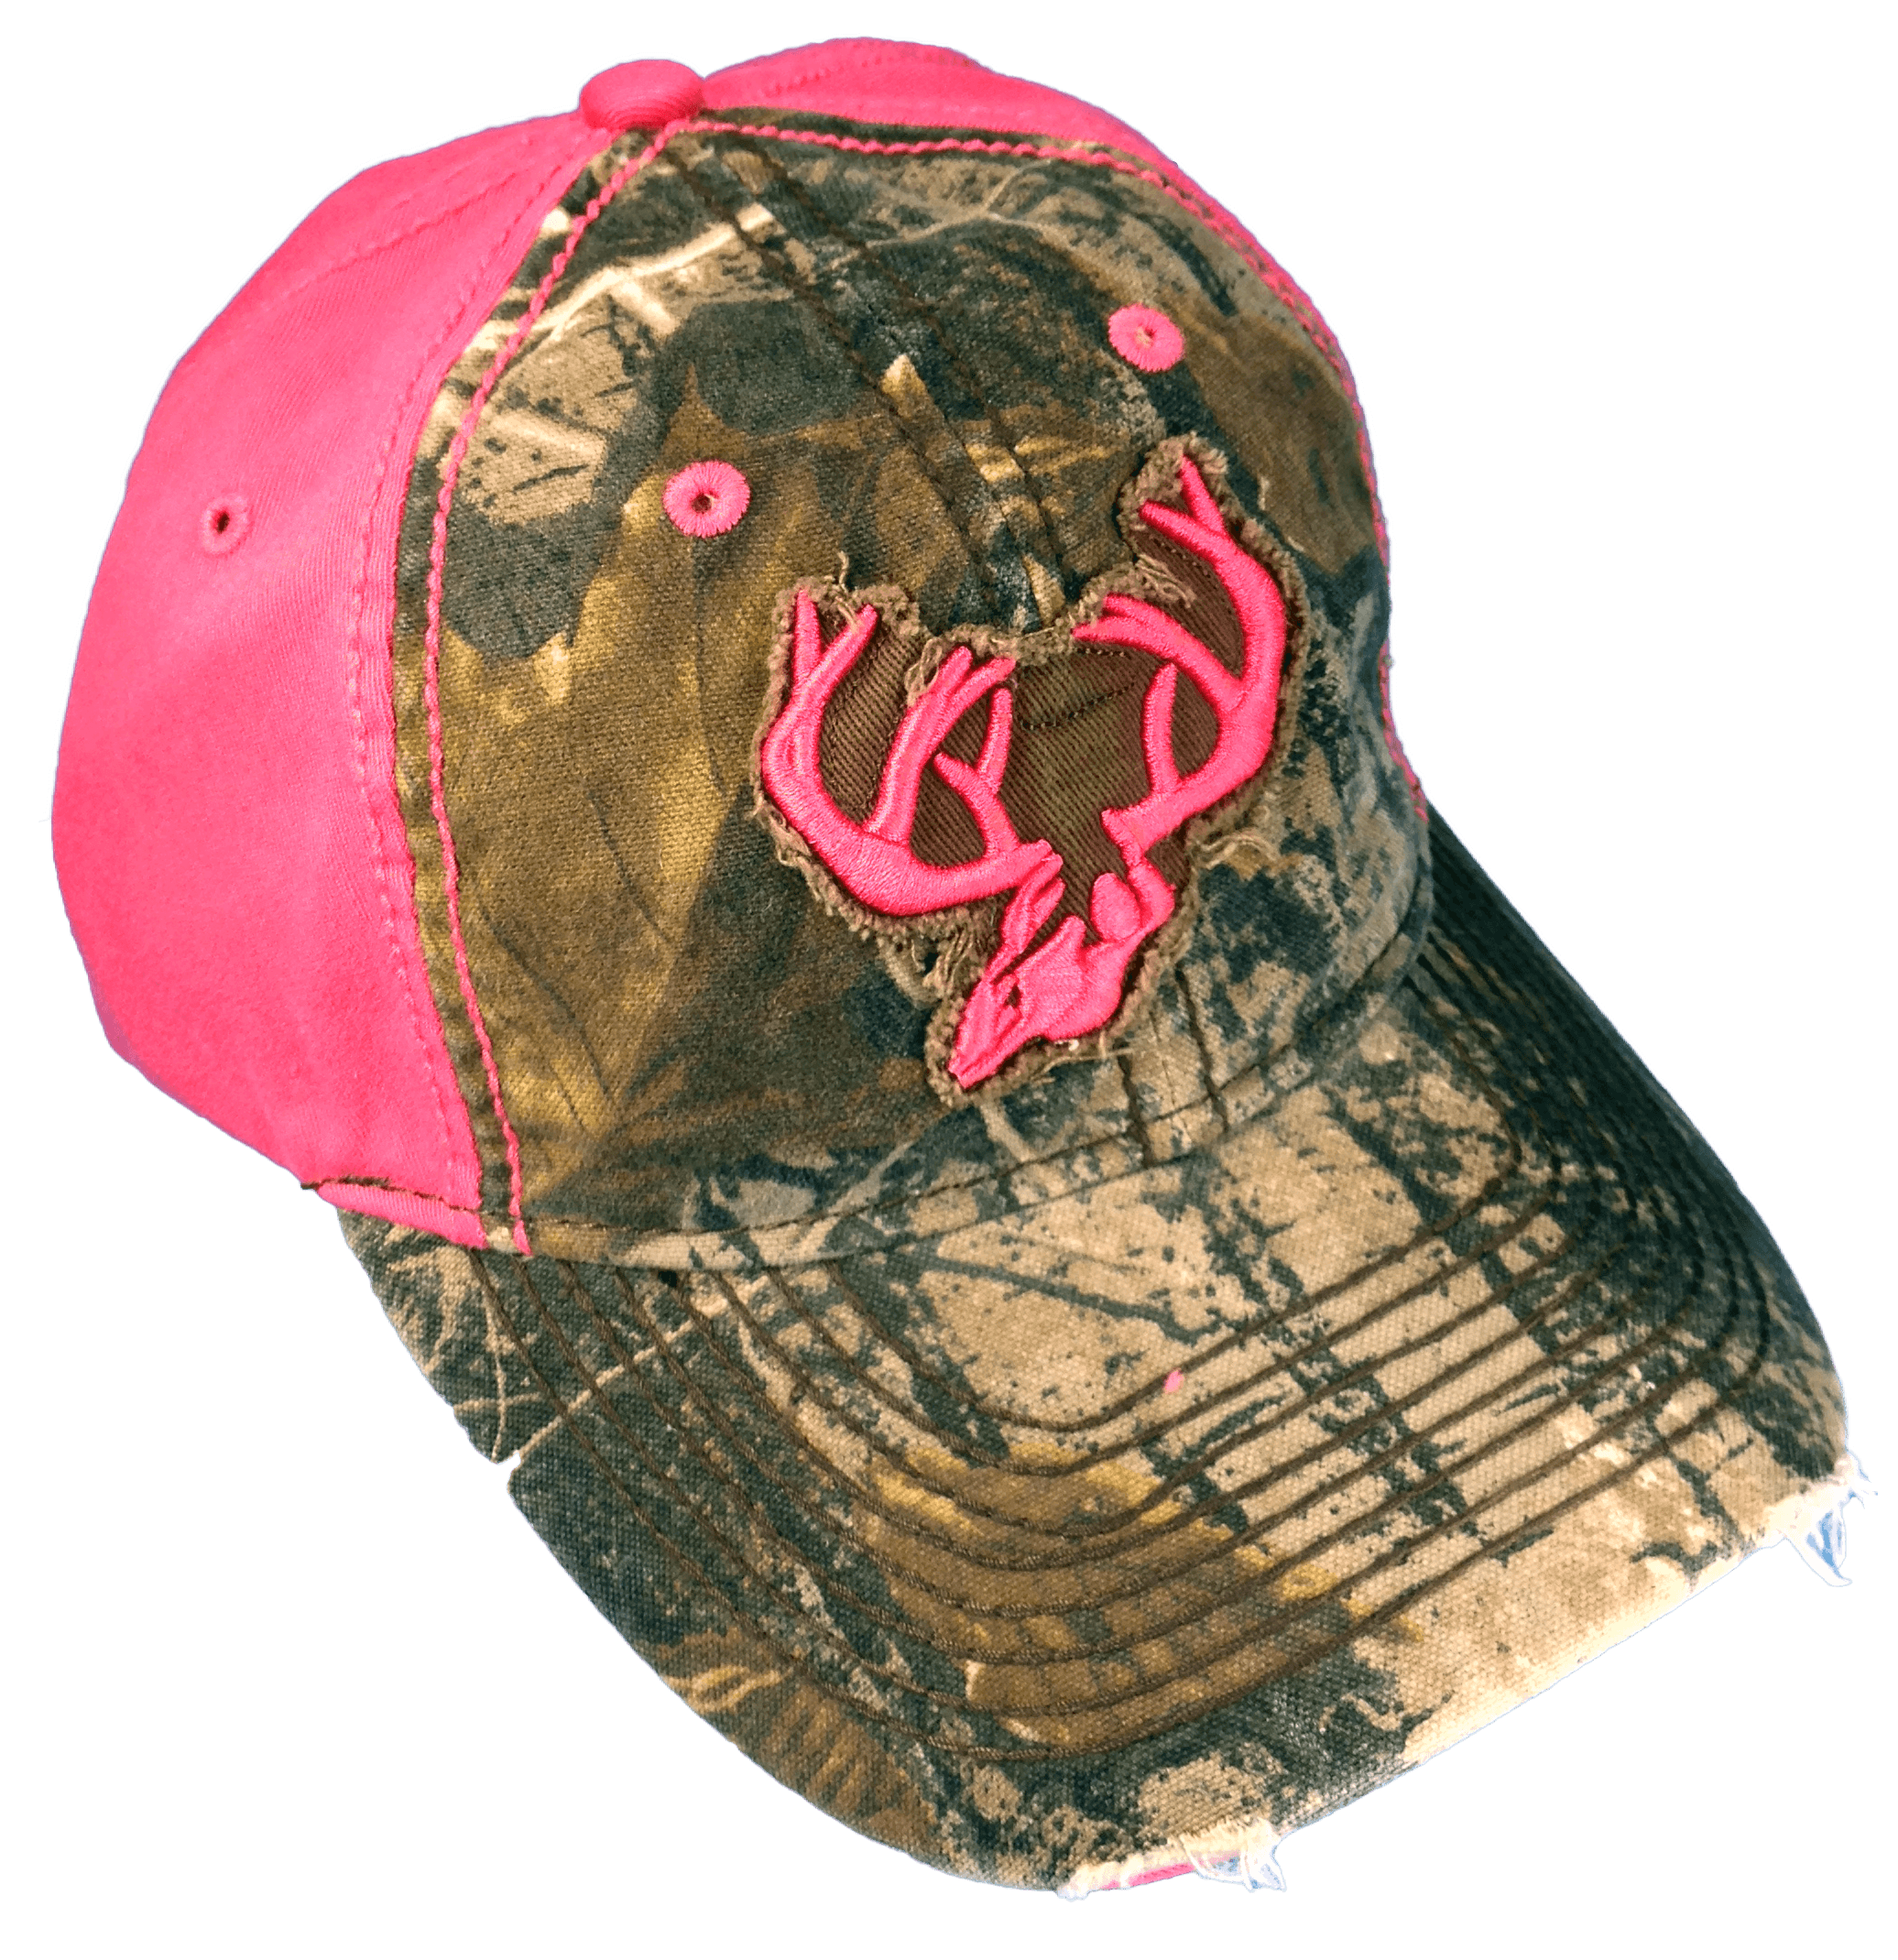 Team Realtree Woman's Camo Cap Pink Deer Horns and back with Real Tree Camo front